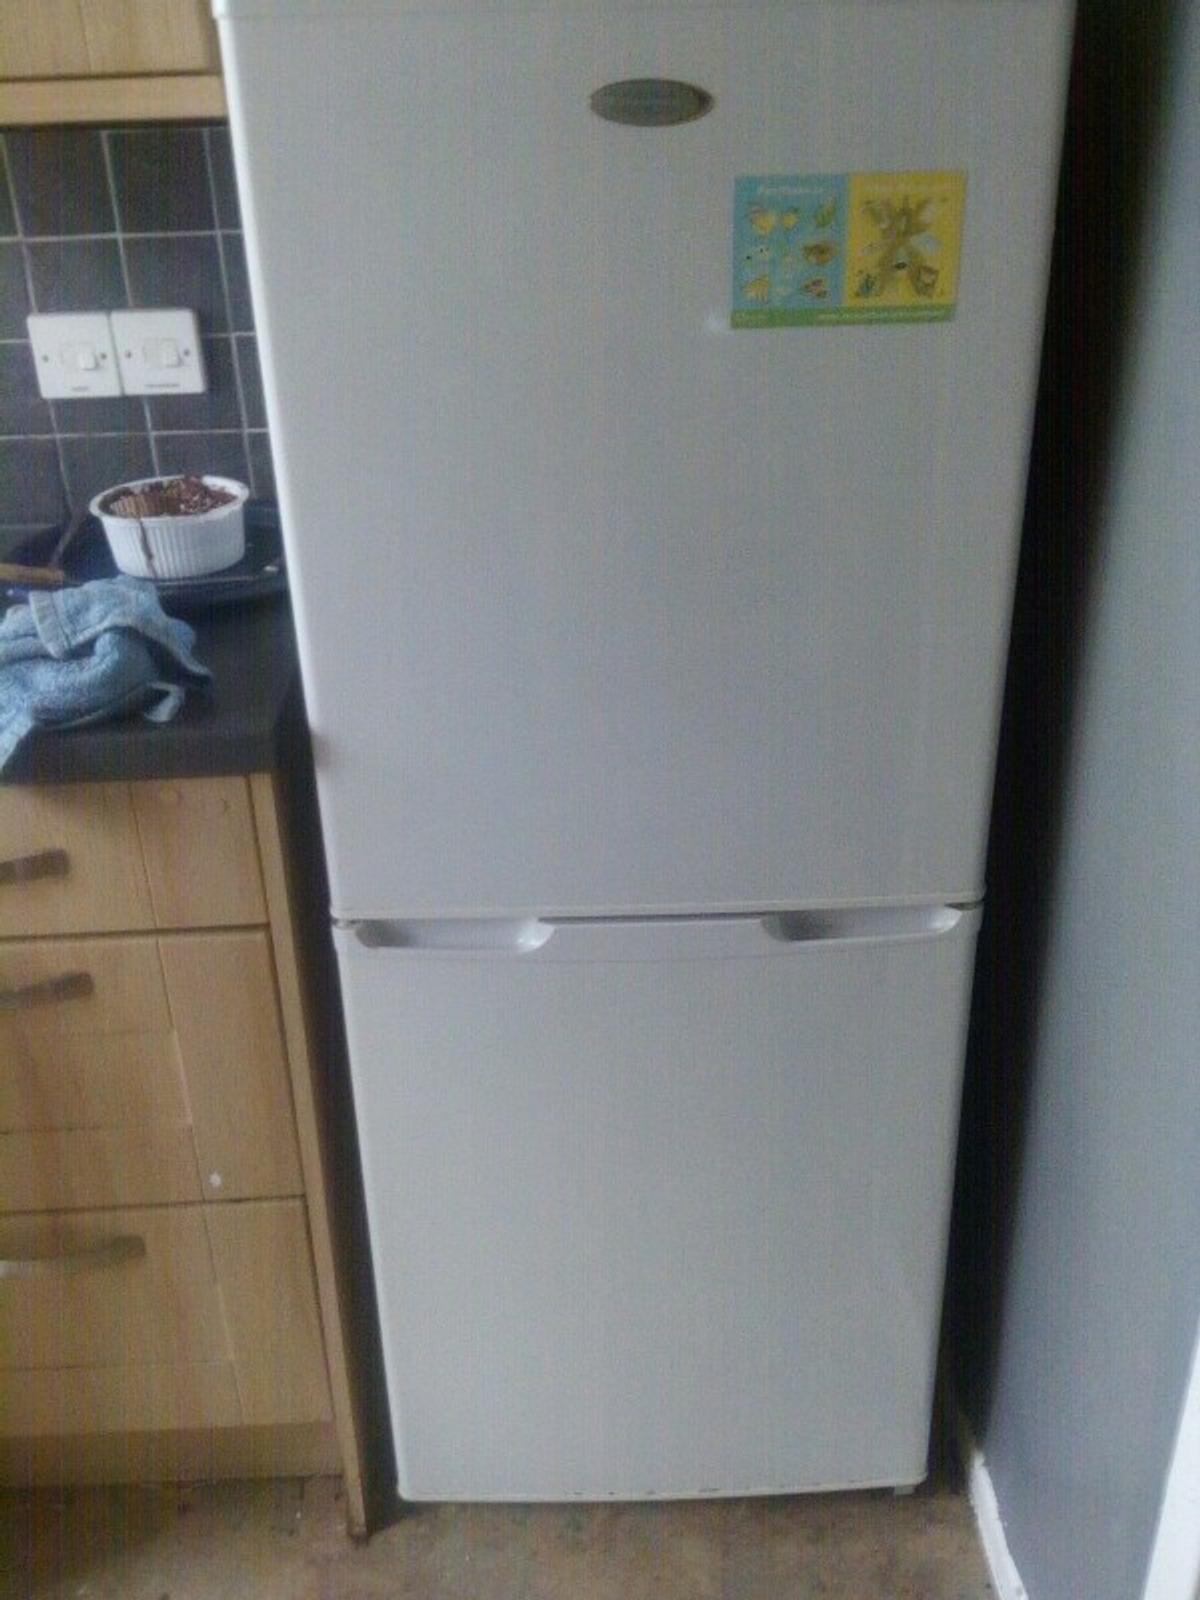 frigidaire fridge freezer in M28 Salford for £55 00 for sale